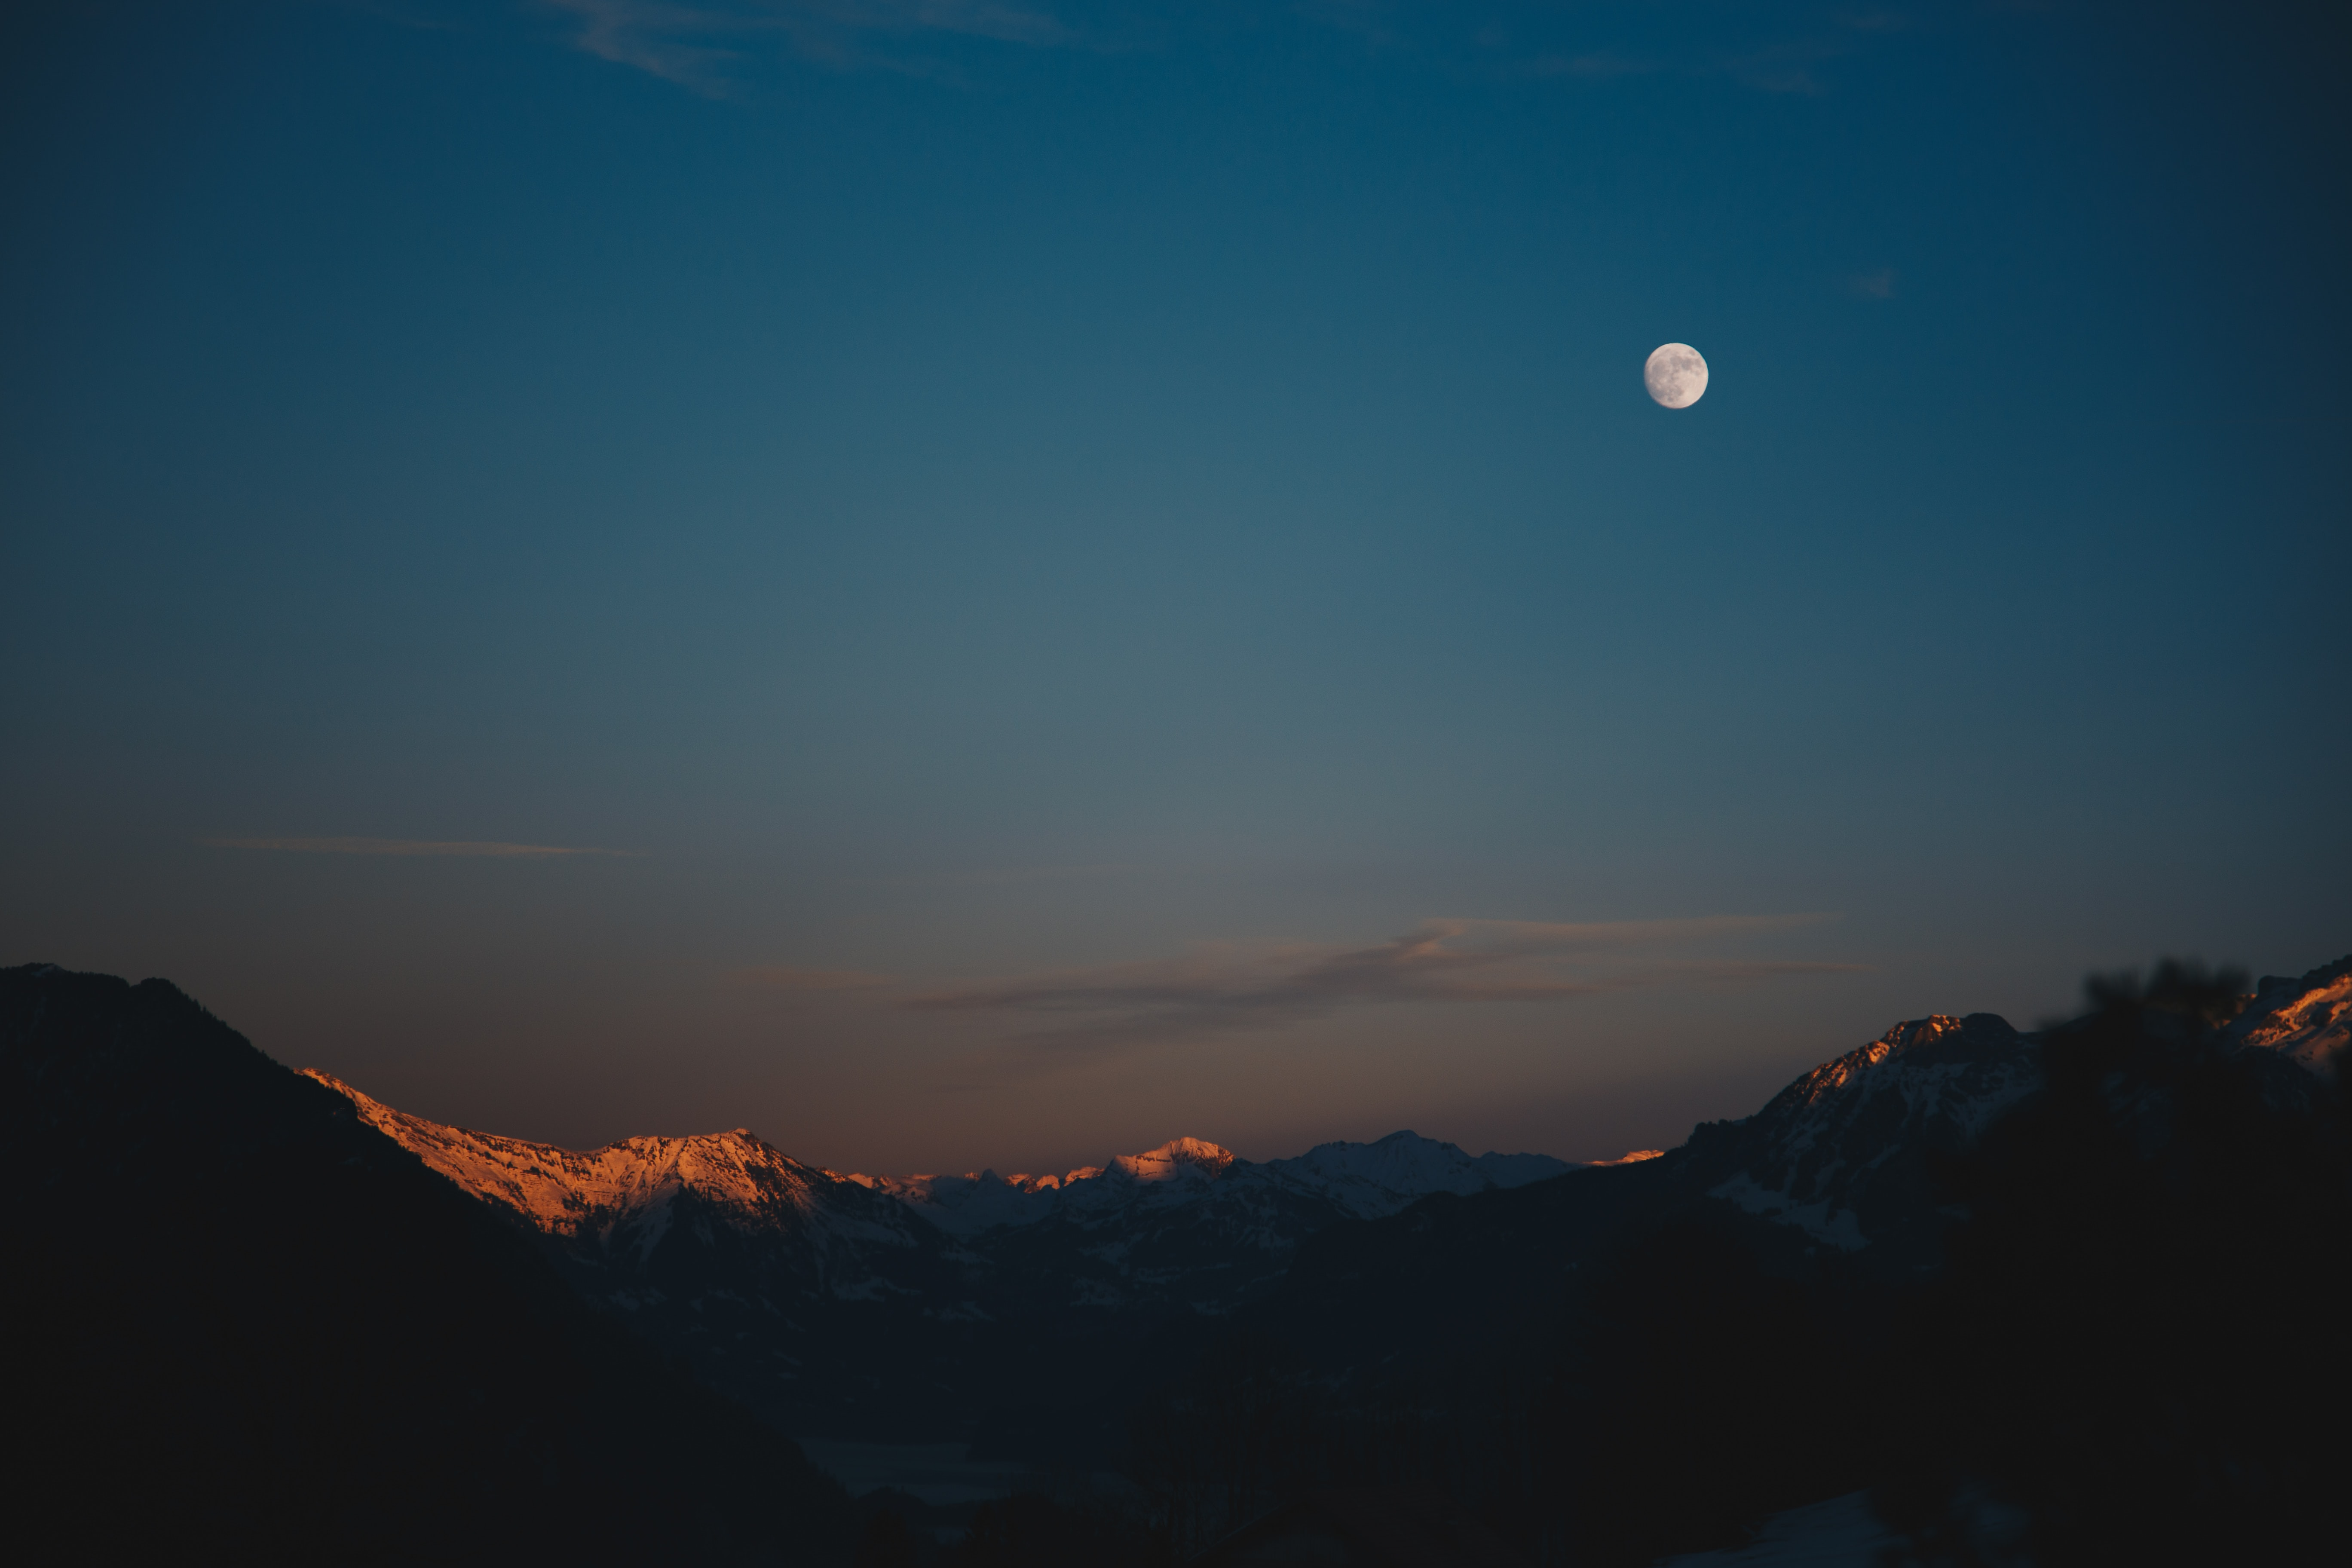 snow-capped mountain at night time with moon